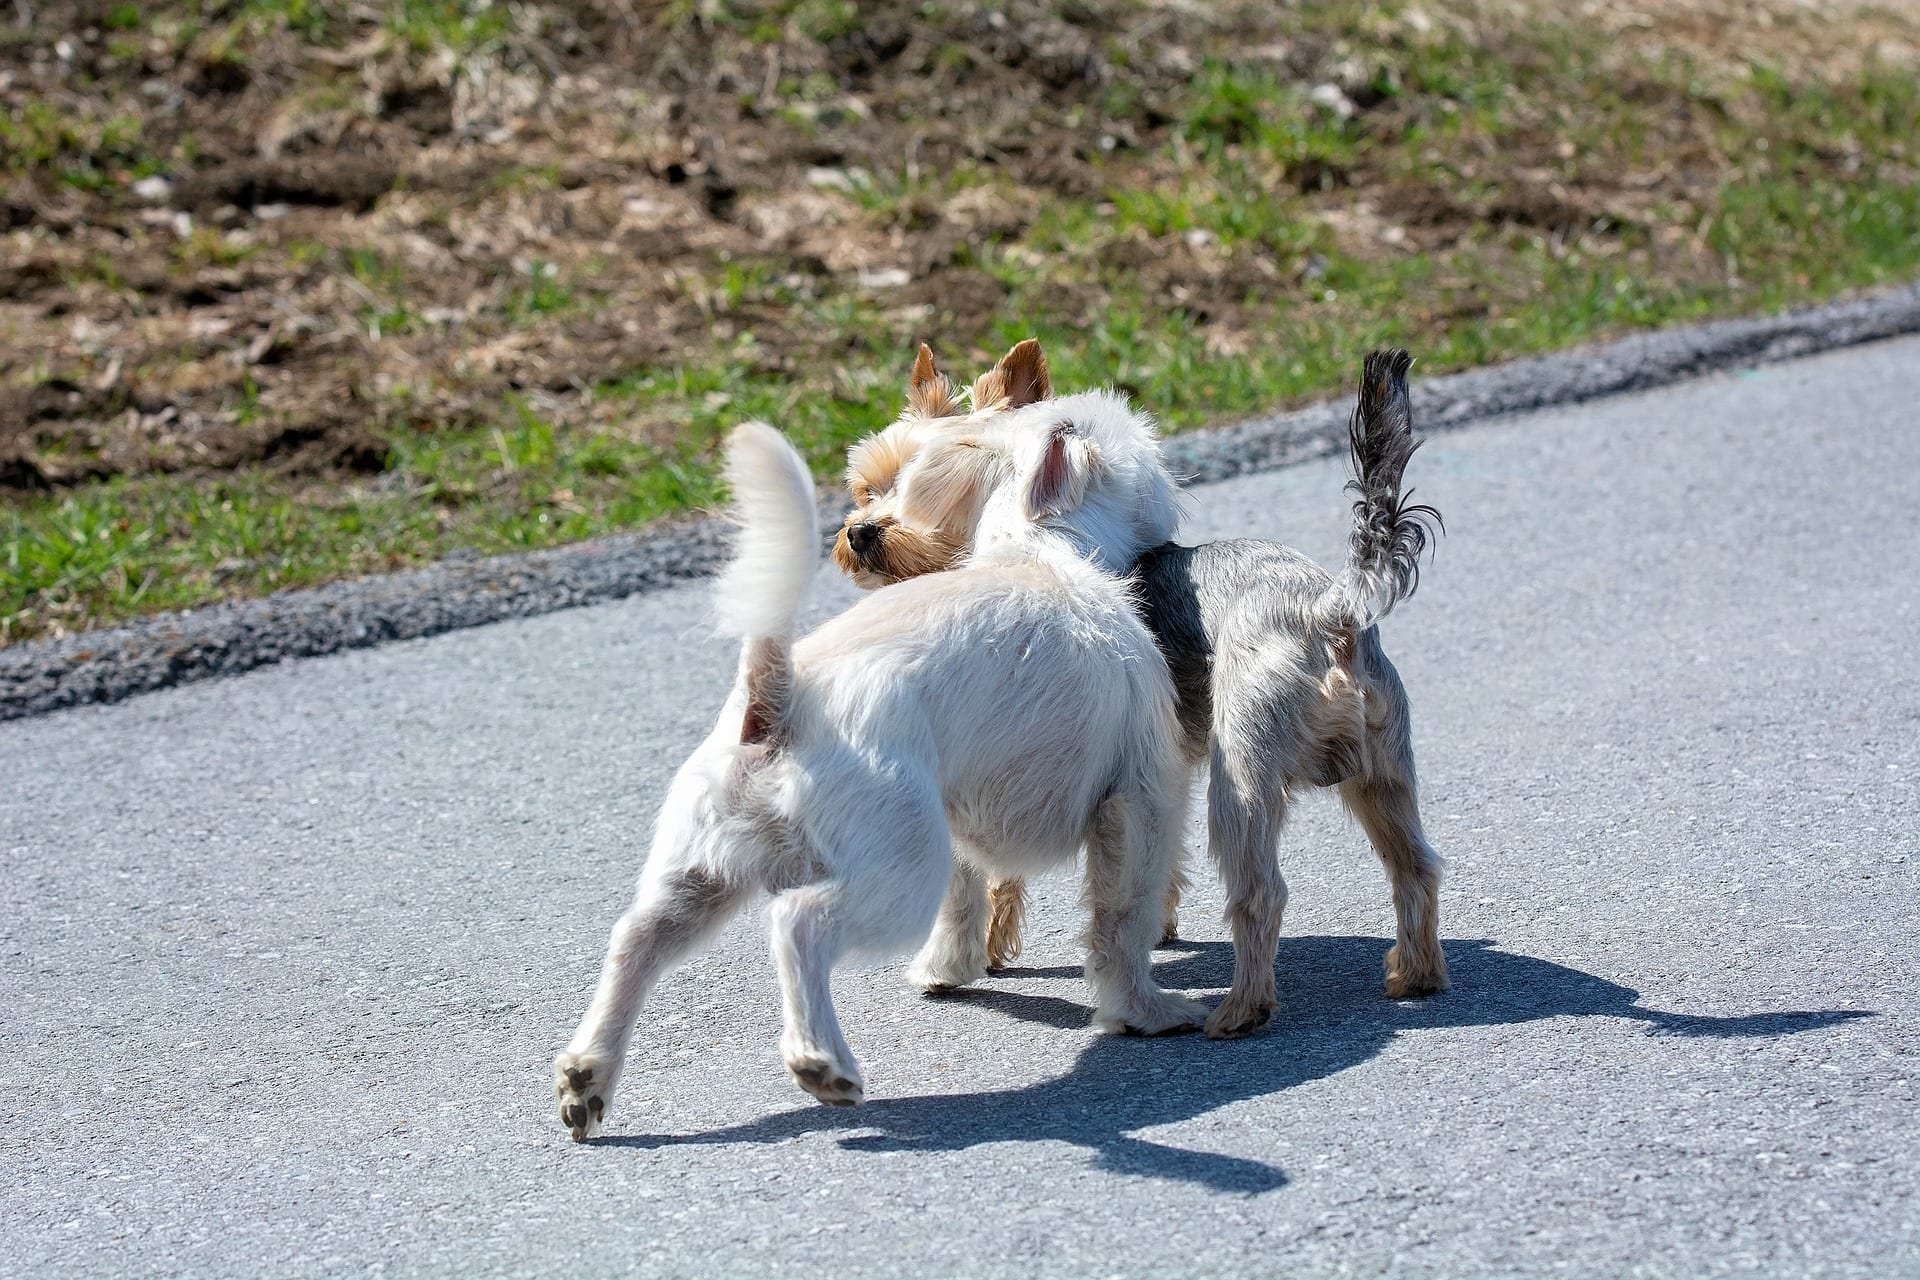 Dogs sniffing each others behinds